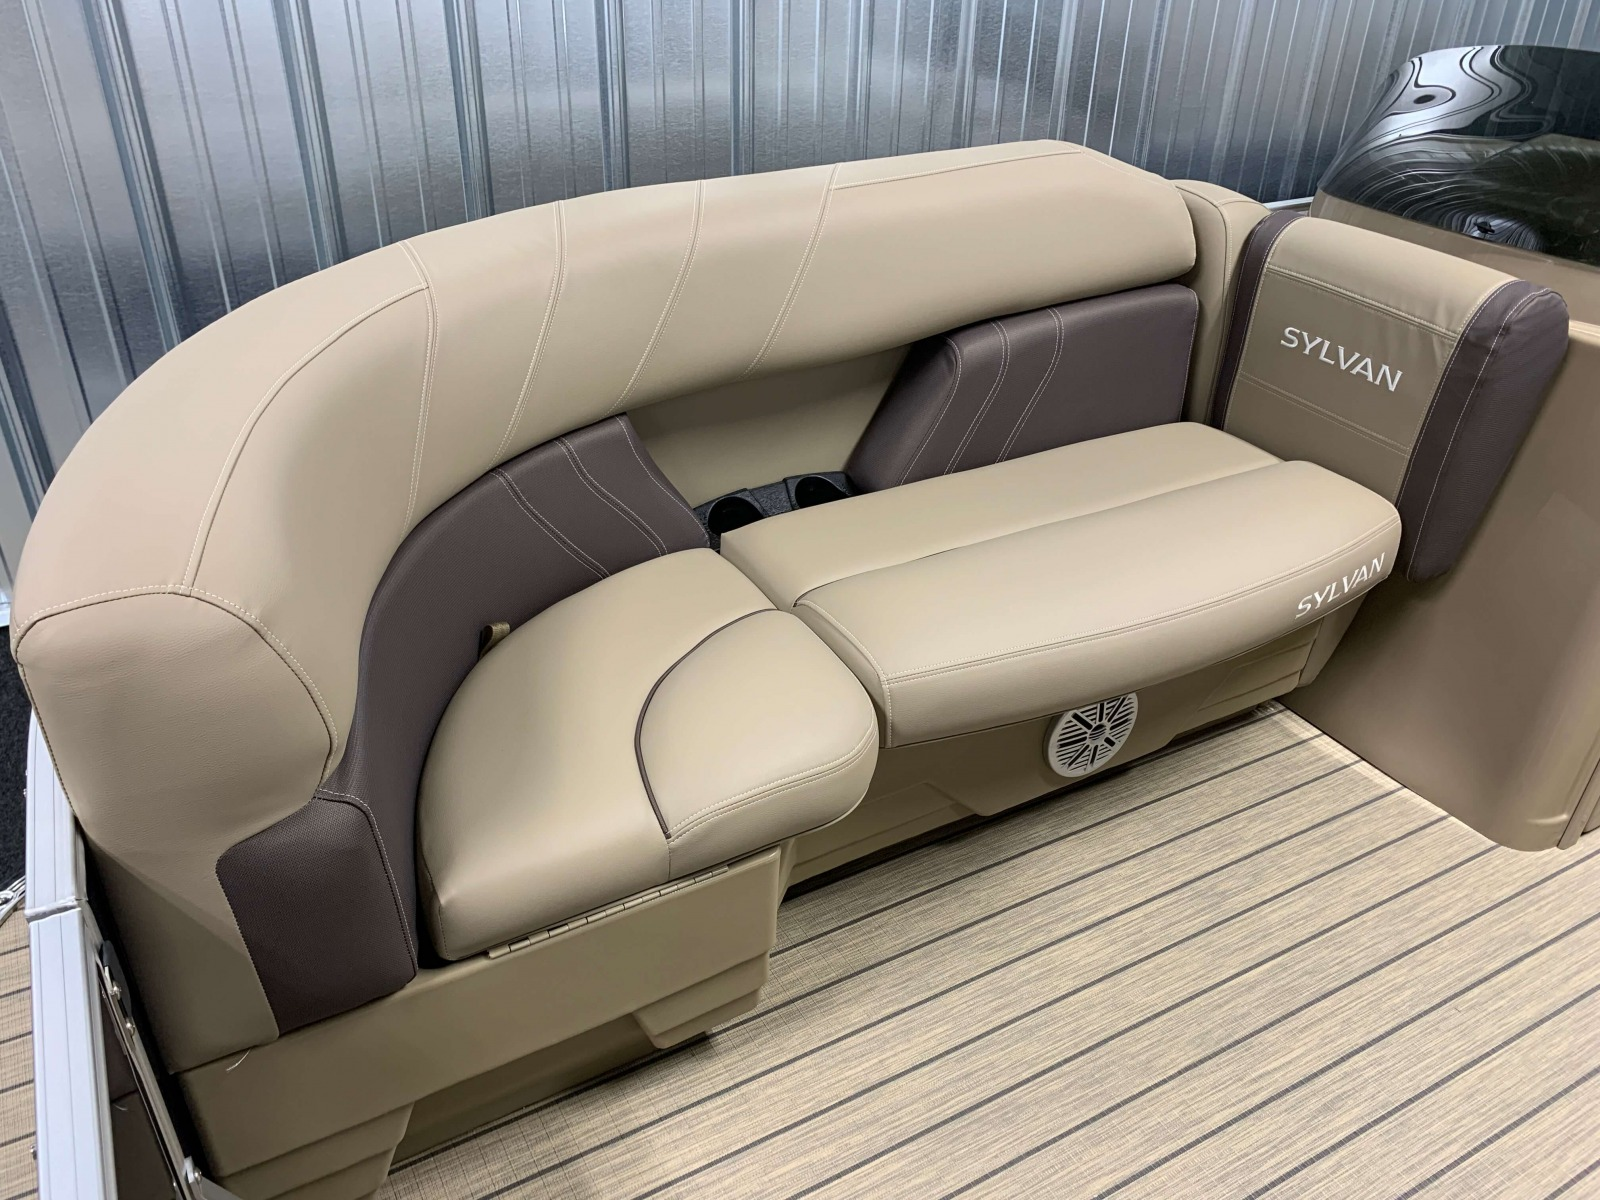 Starboard Side Bow Seating of a 2020 Sylvan Mirage 8520 Cruise Pontoon